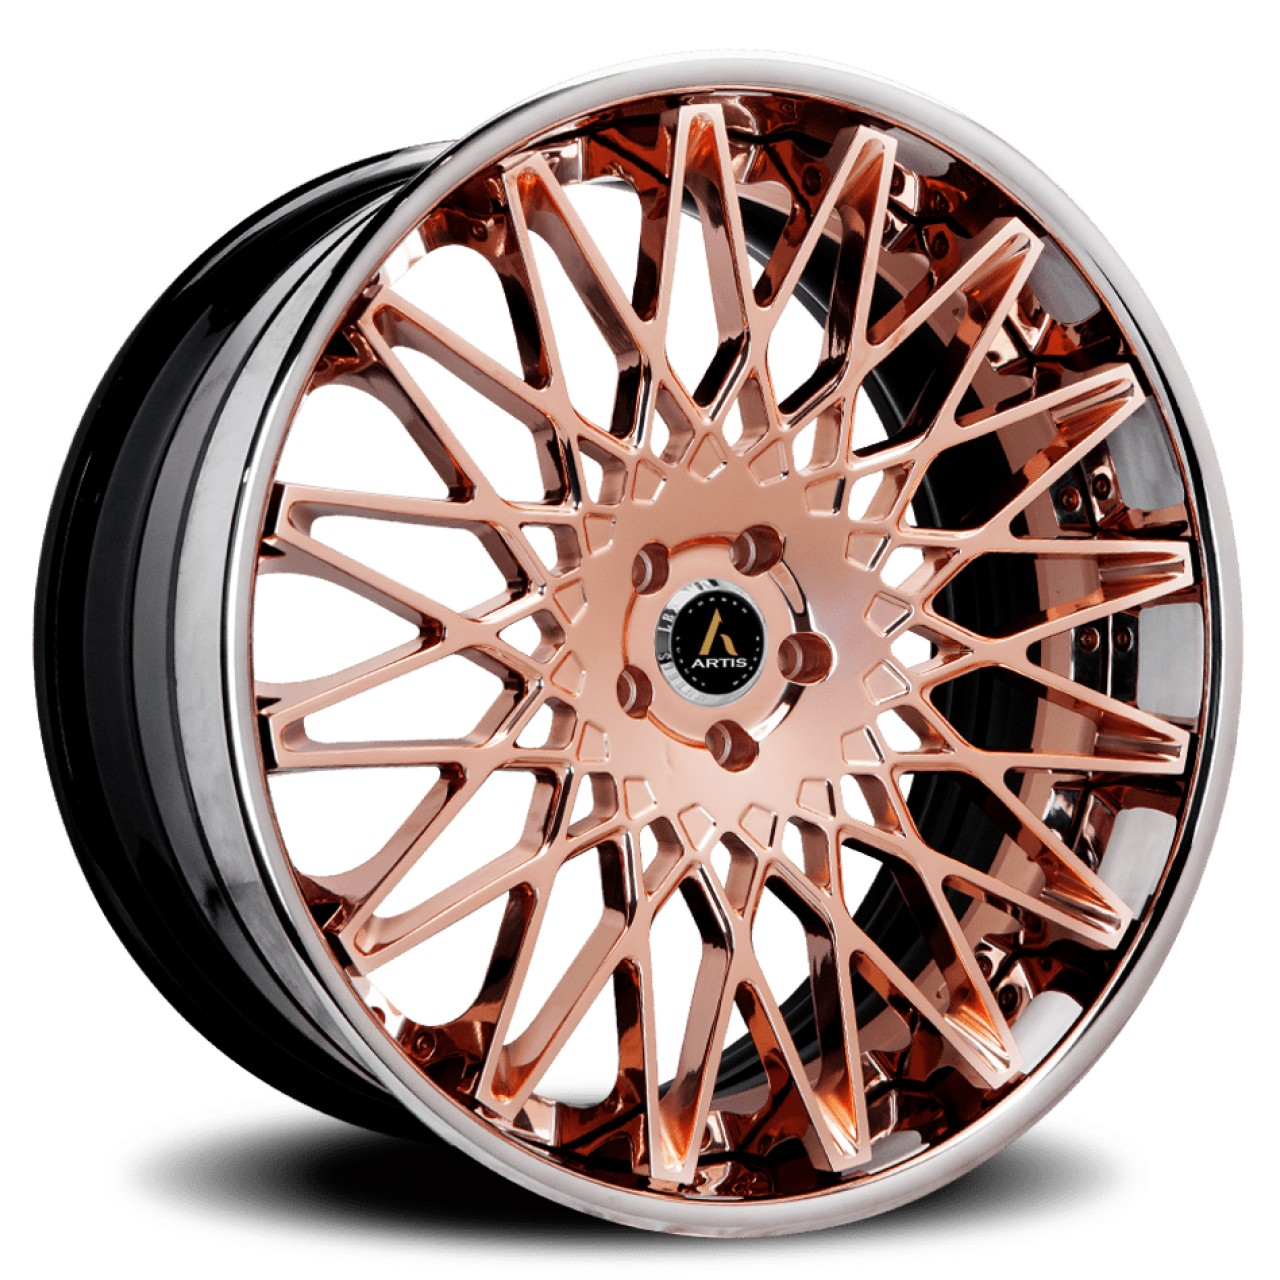 Artis Forged Monza wheel with Rose Gold finish